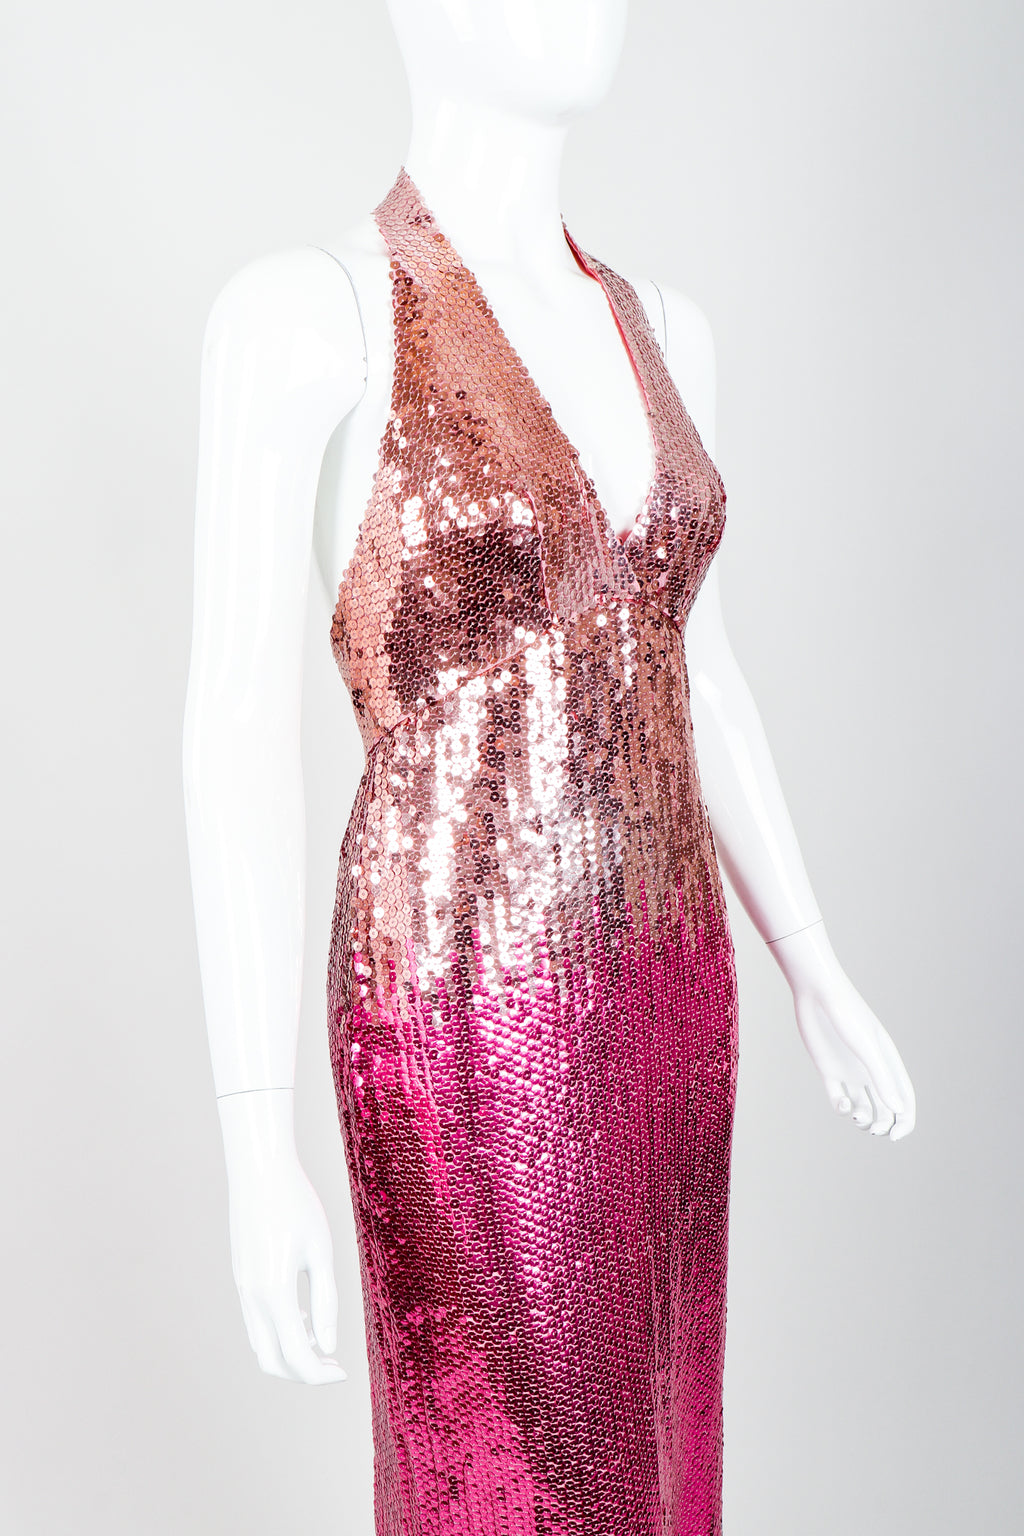 Vintage Ruben Panis Ombré Sequin Halter Gown on Mannequin Angle Crop at Recess Los Angeles